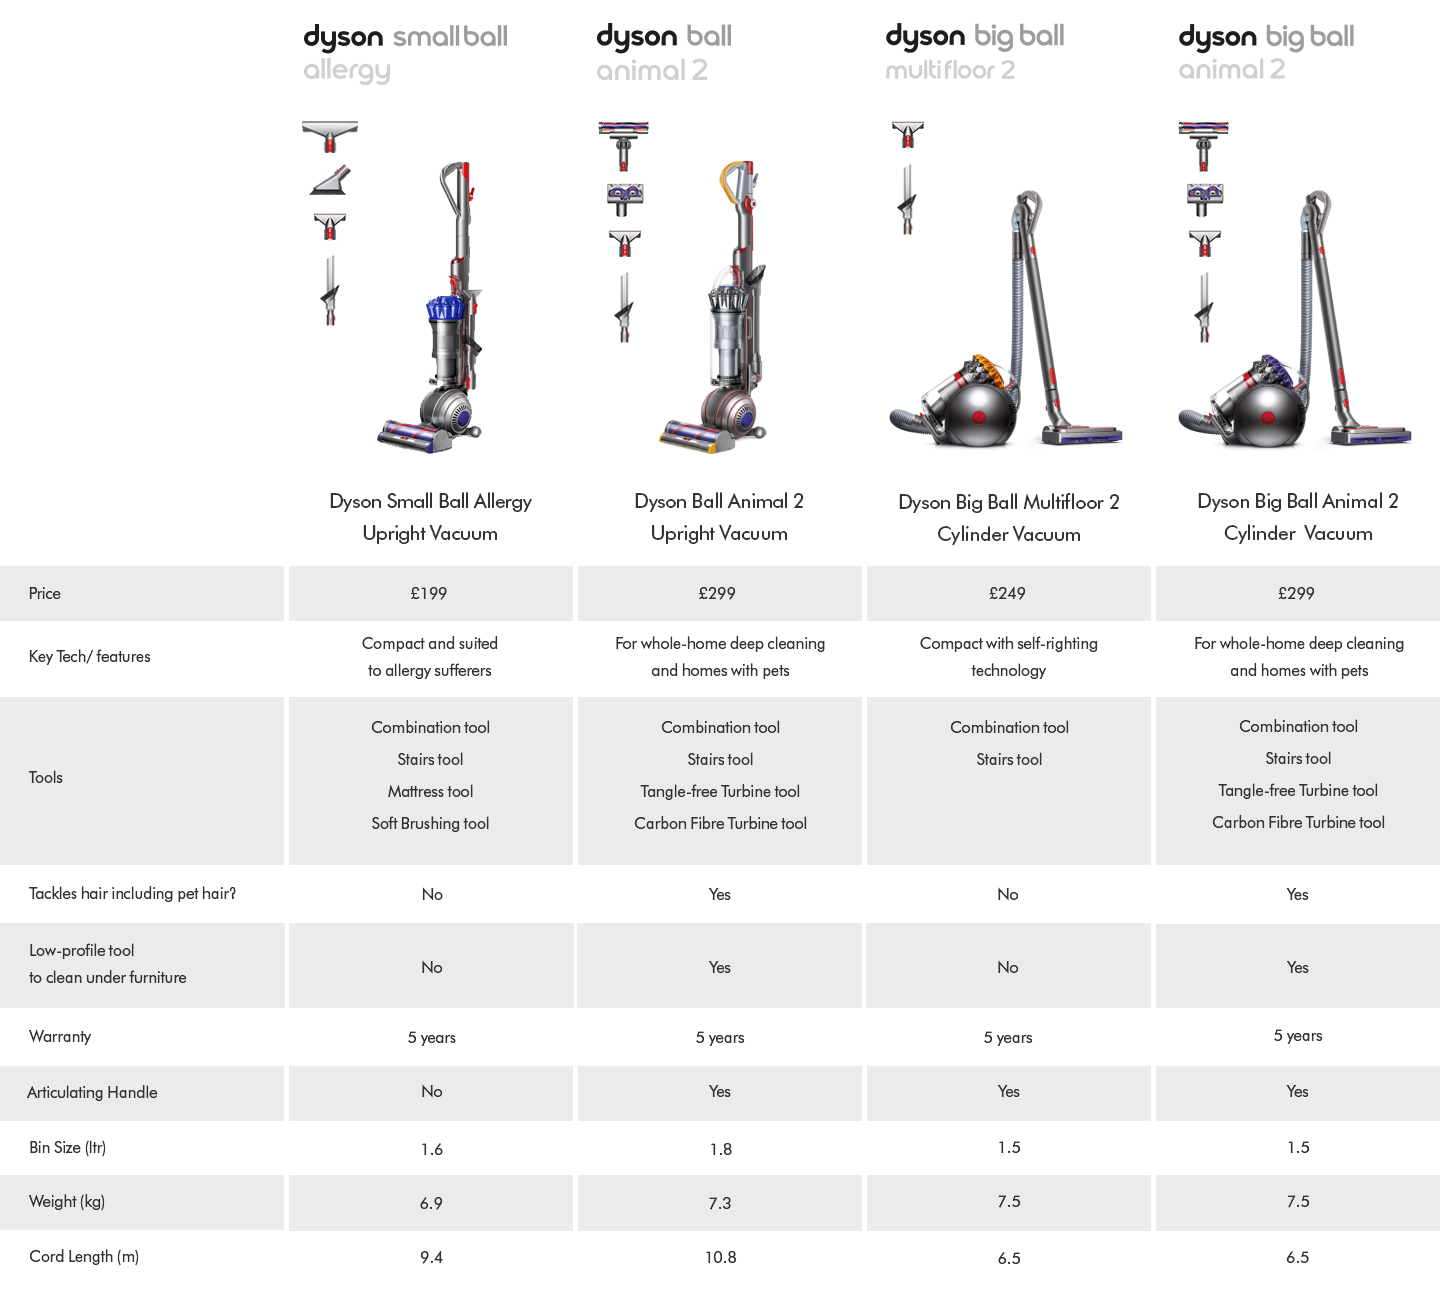 Uprights-and-cylinders-comparison-table-1nYHgWWUt8pghA